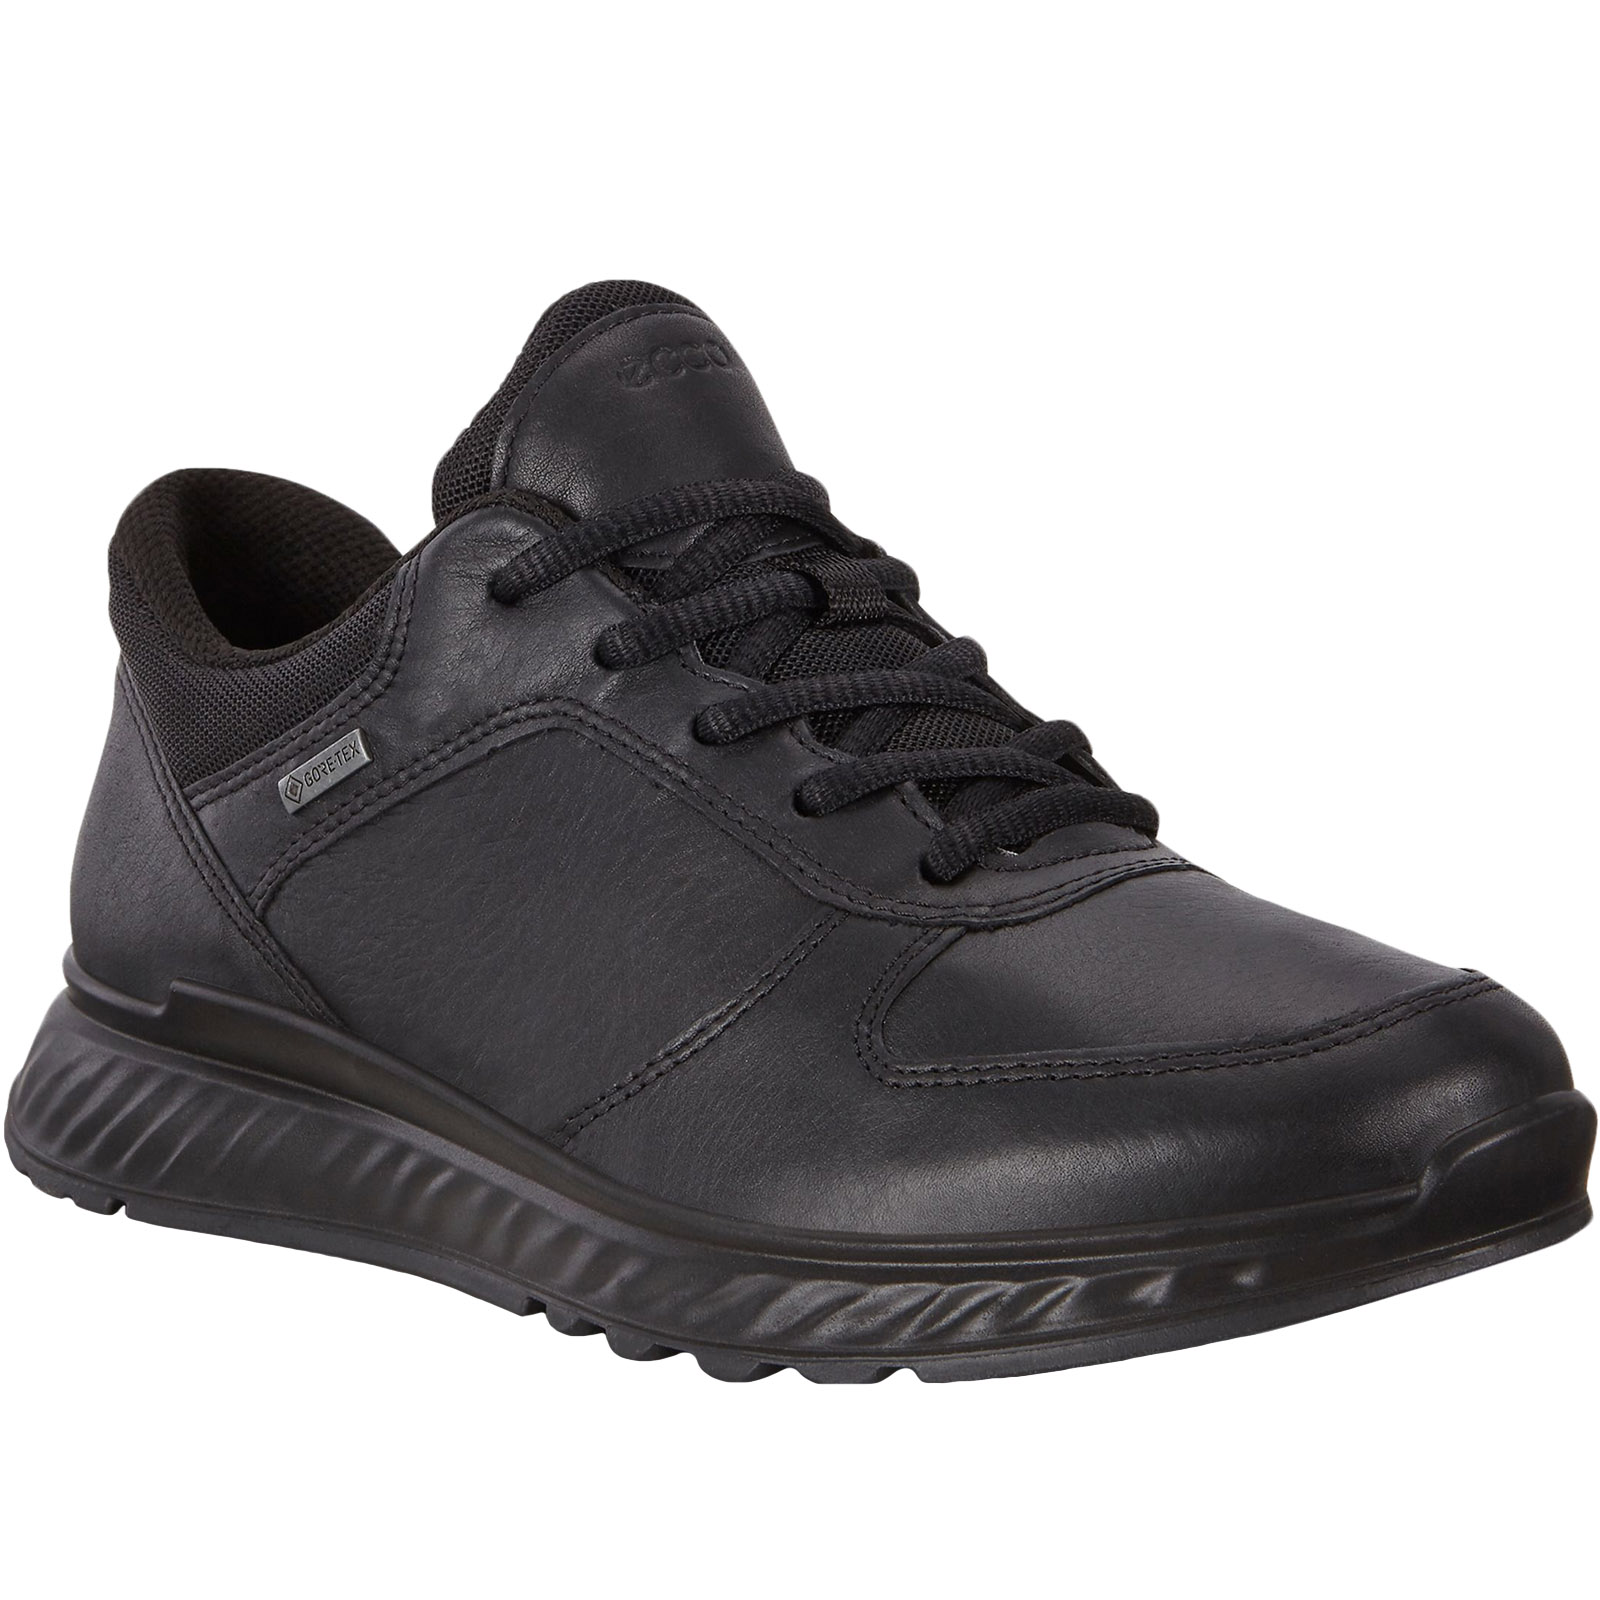 Black Ecco Womens Exostride Low Gore-Tex Leather Walking Hiking Shoes Trainers